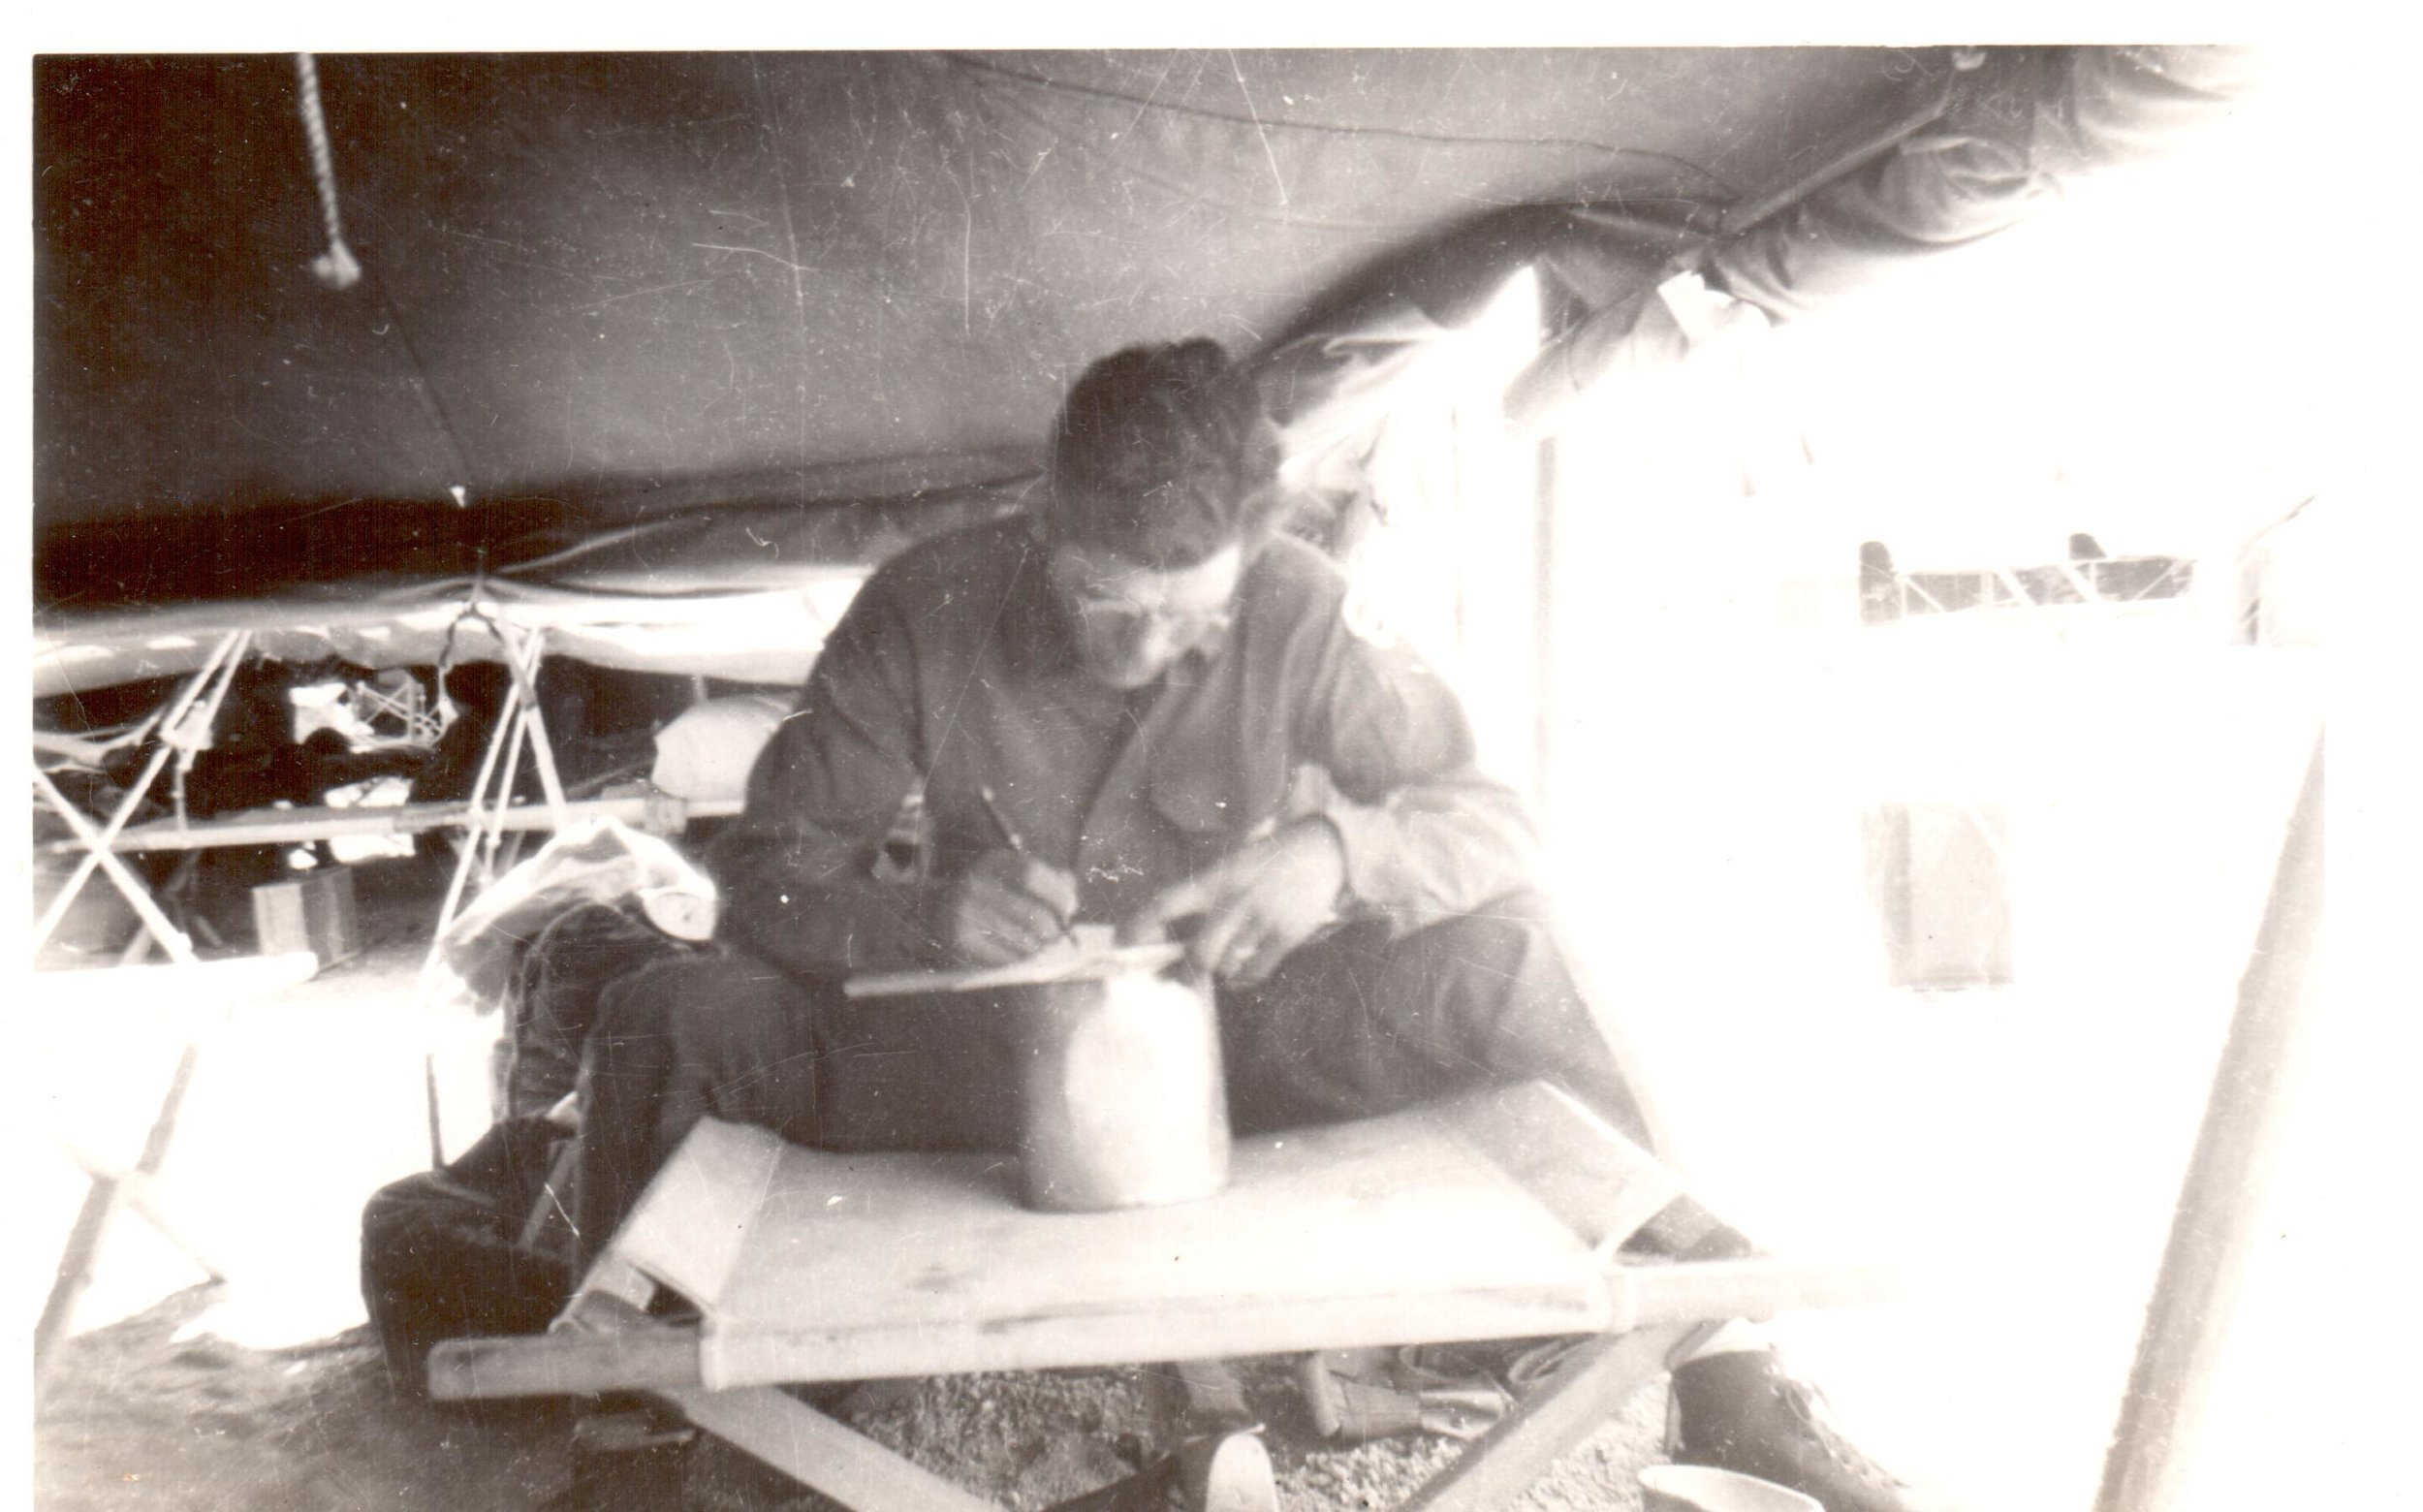 John McGraw, Fultonian and World War II veteran, writing to family back home while serving our country.